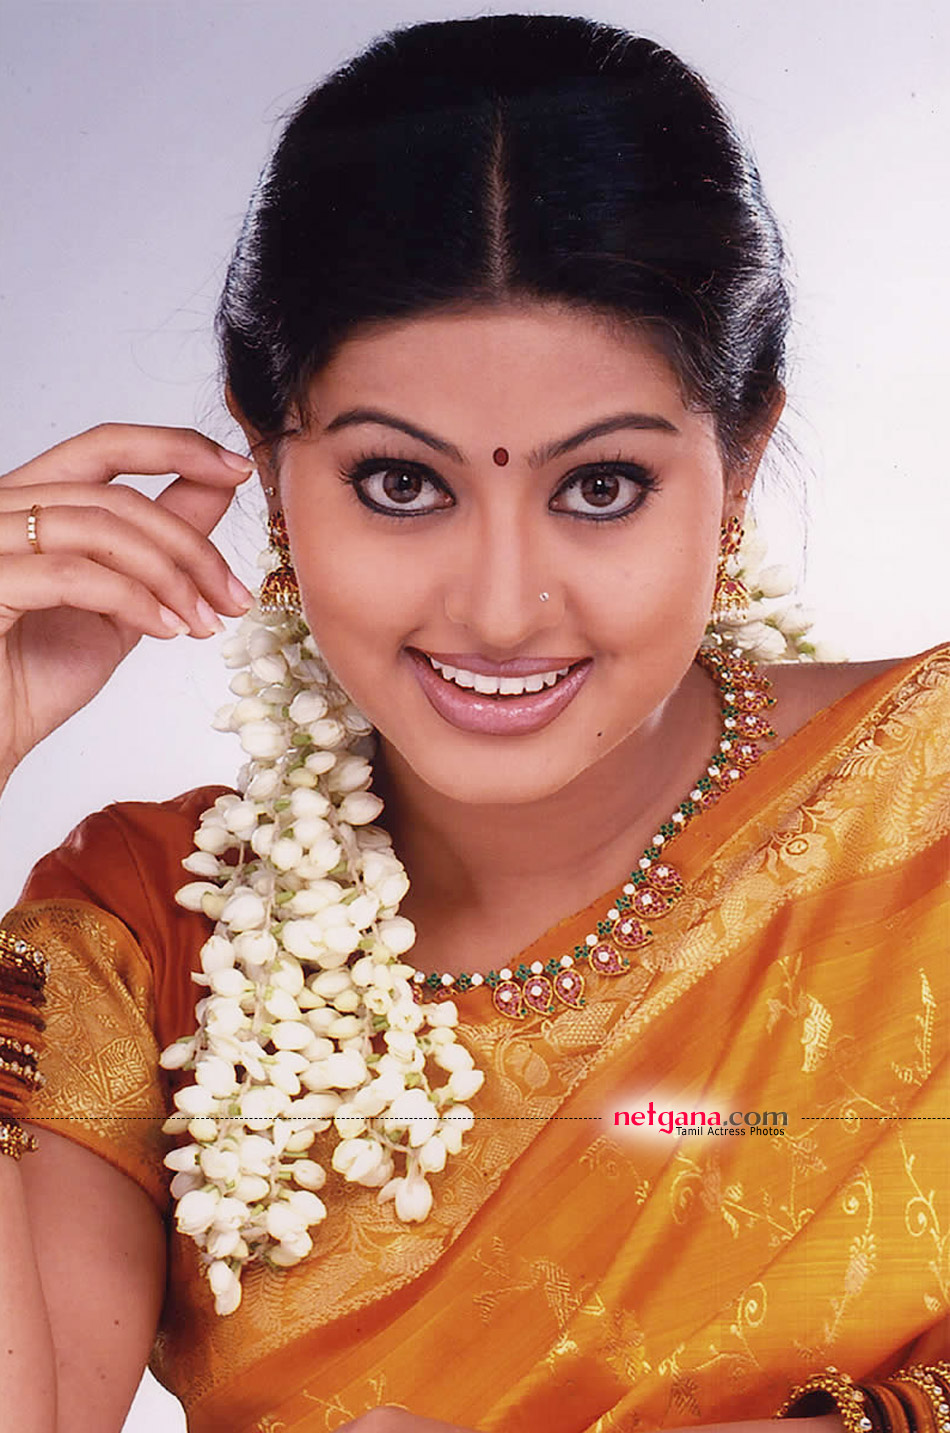 Sneha, Tamil Actress photo gallery, Sneha pics, hot pics, Sneha sexy pics, sneha photo, sneha picture, hot images, sneha stills